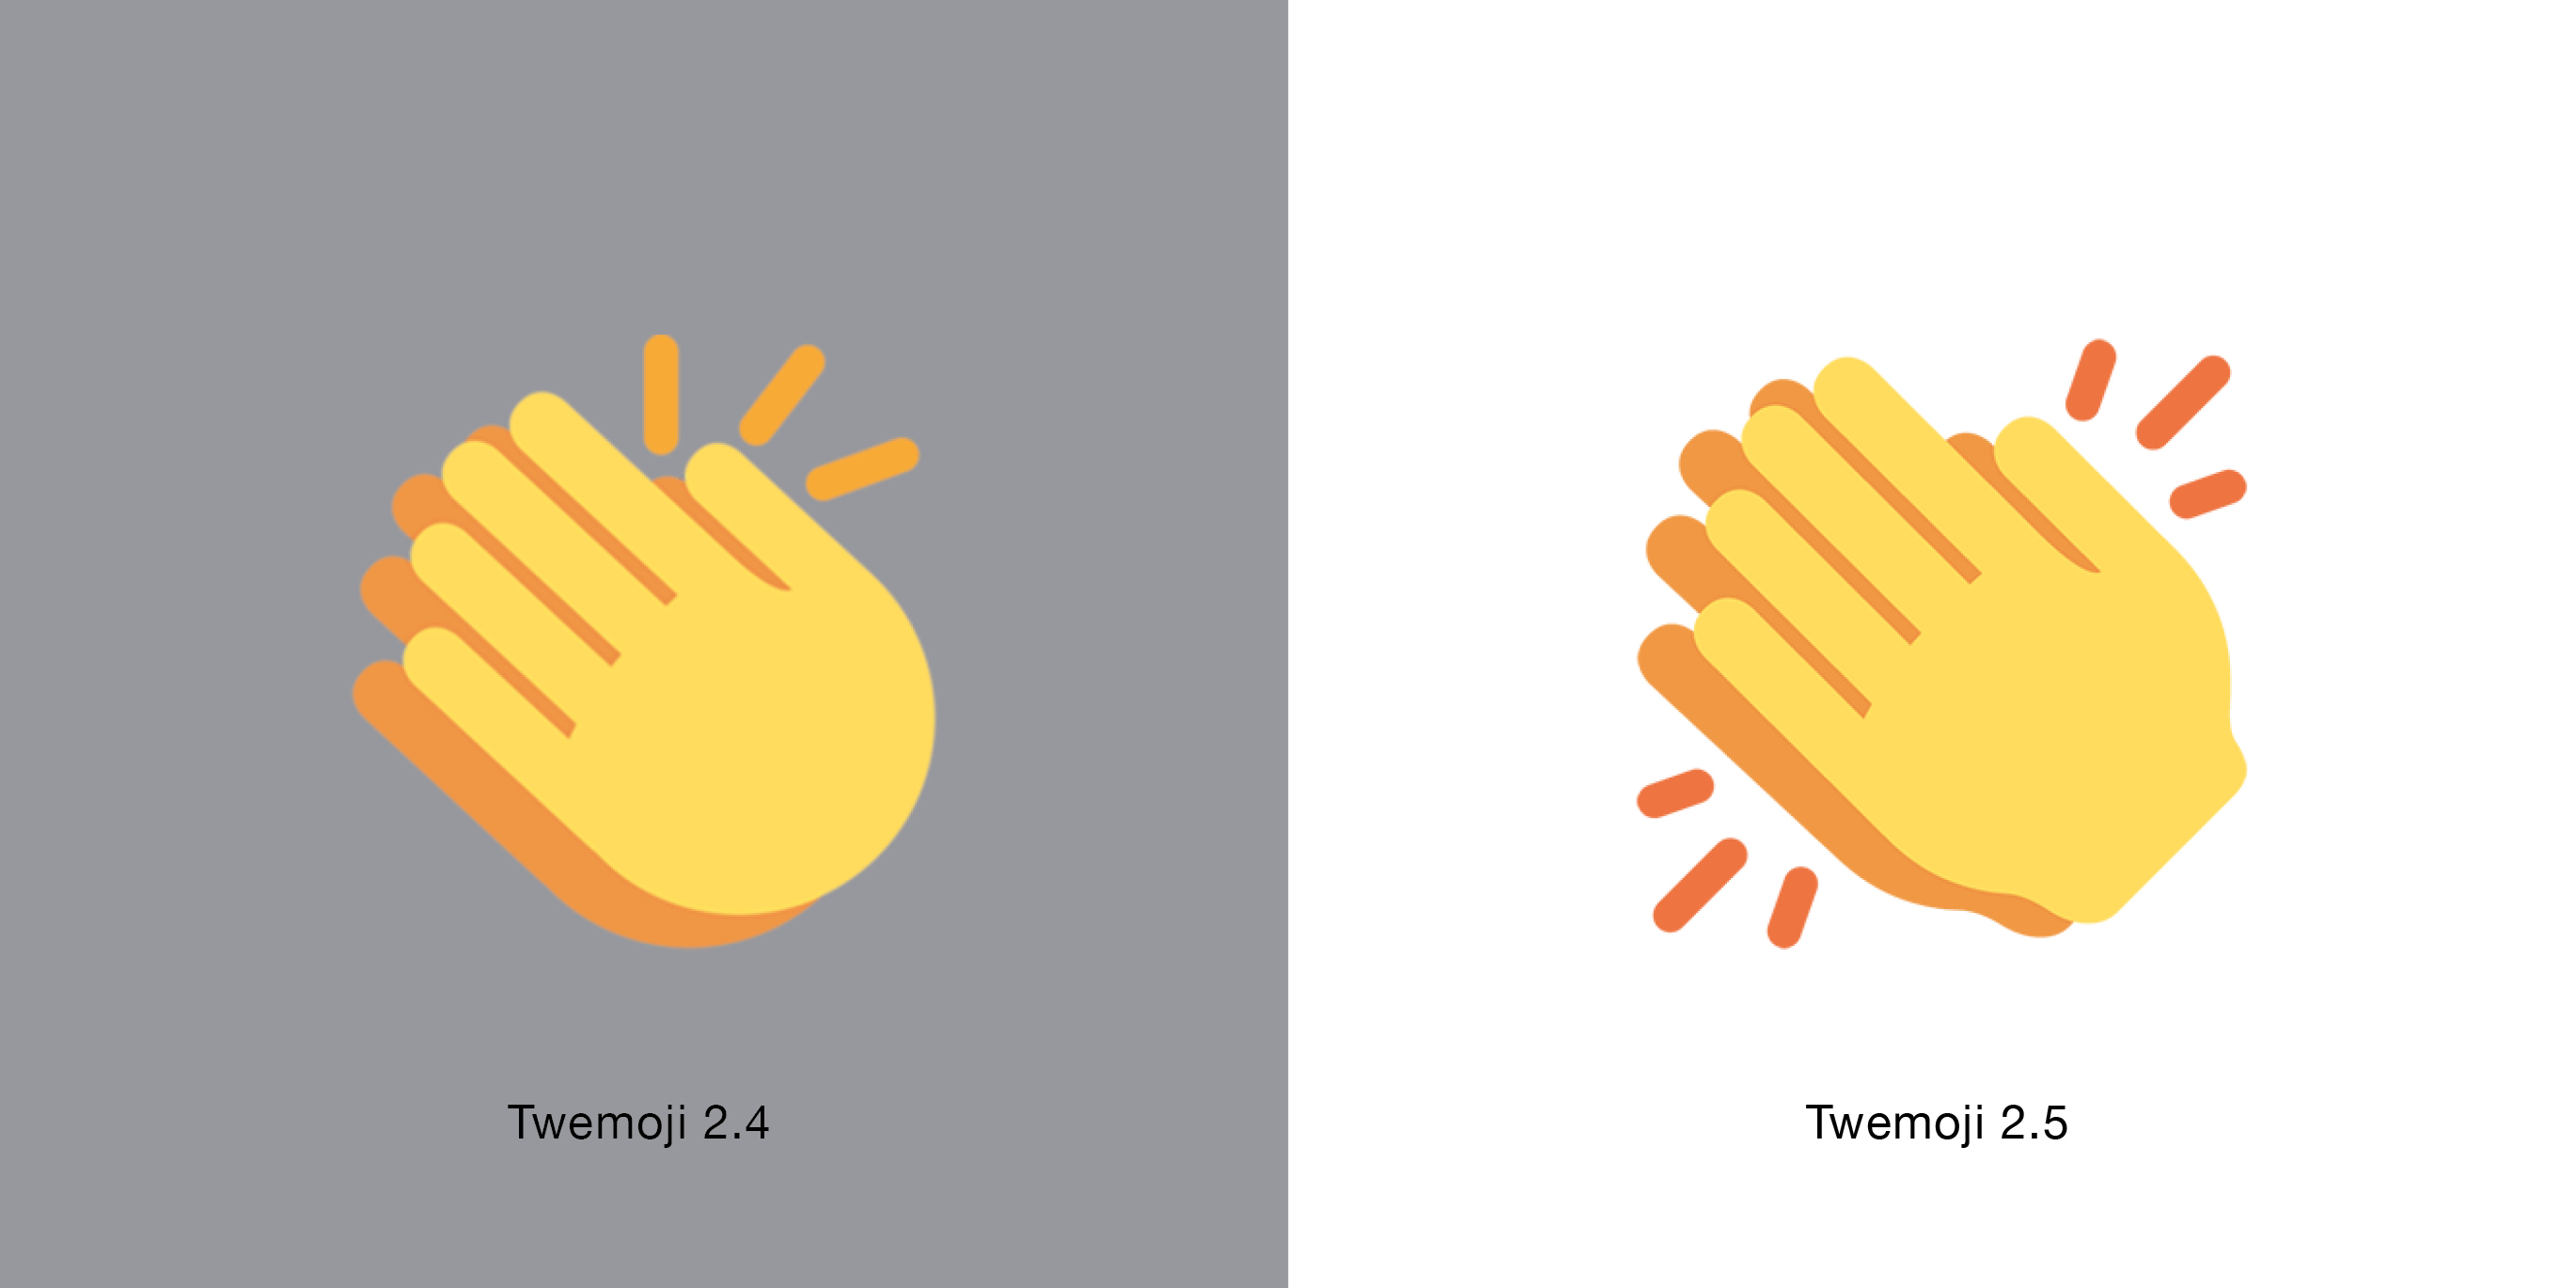 clapping-hands-2.5-emojipedia-twittertwemoji-emojipedia-2